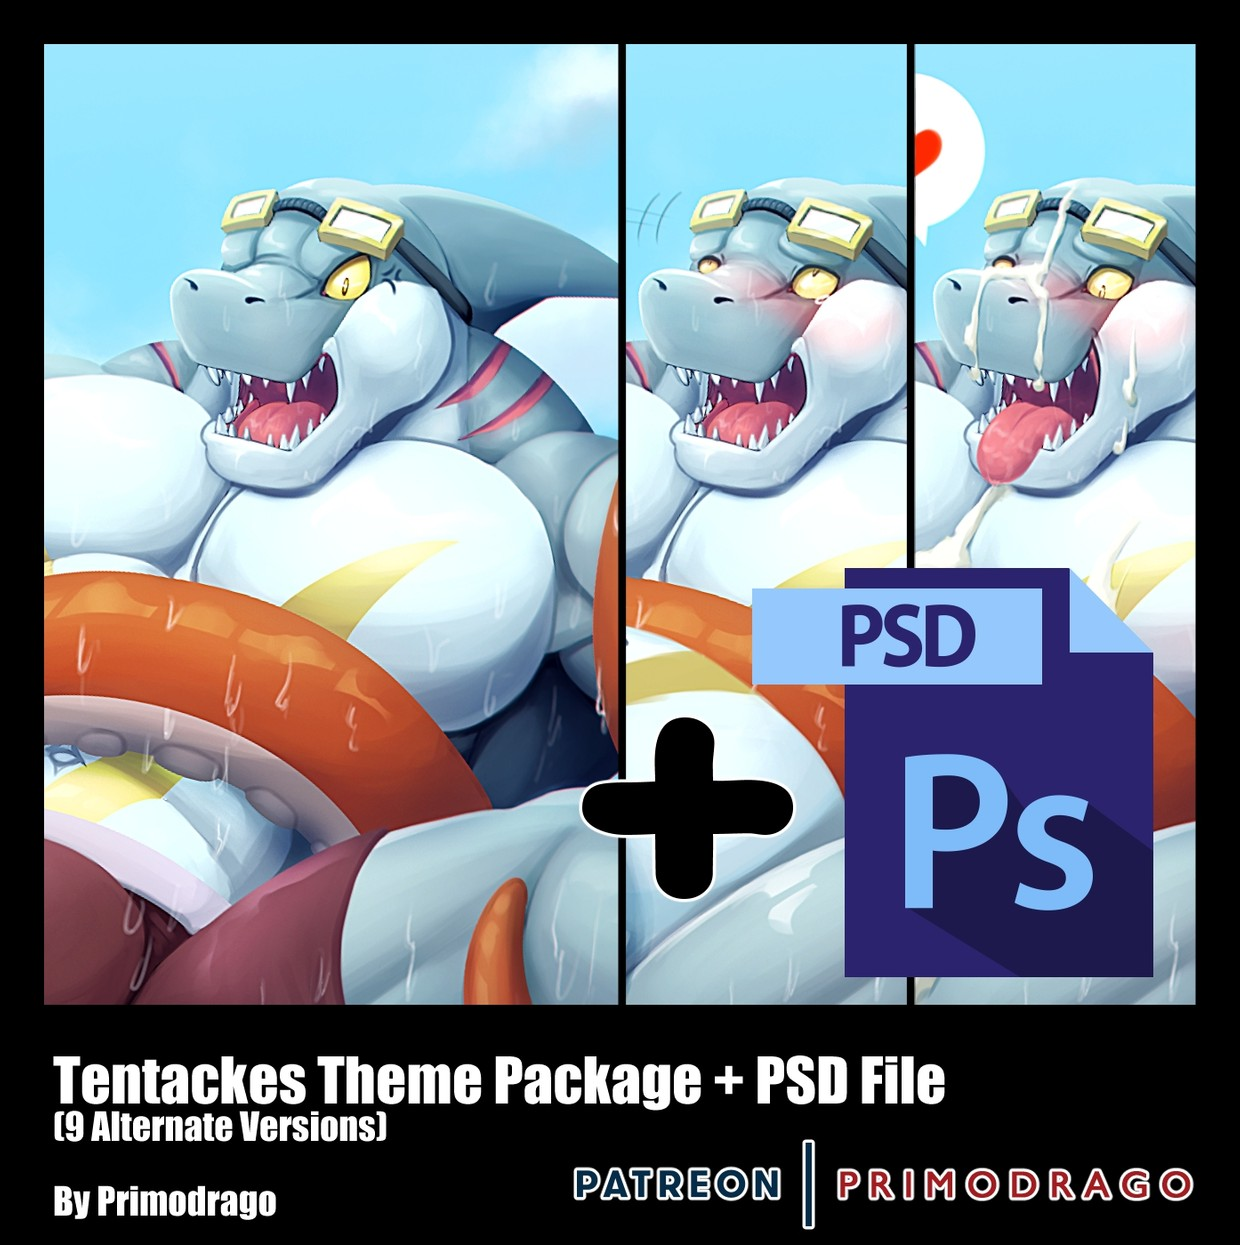 Tentacles Theme Artpack + PSD File